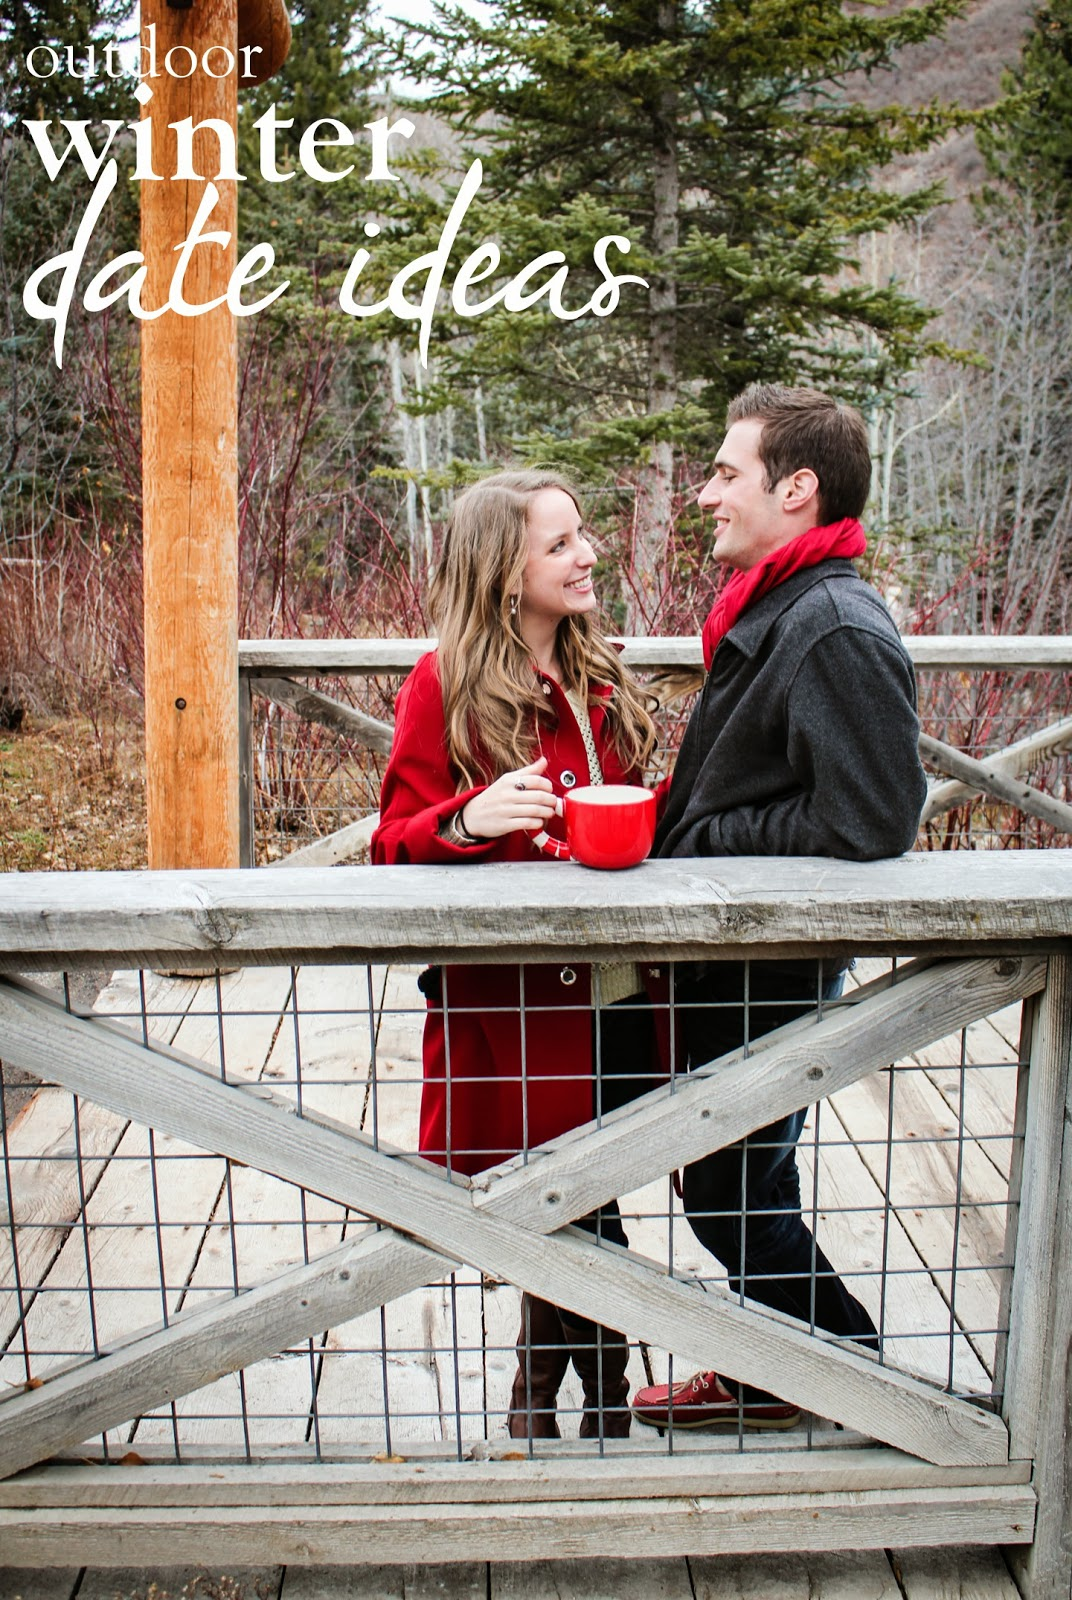 14 Outdoor Winter Date Ideas